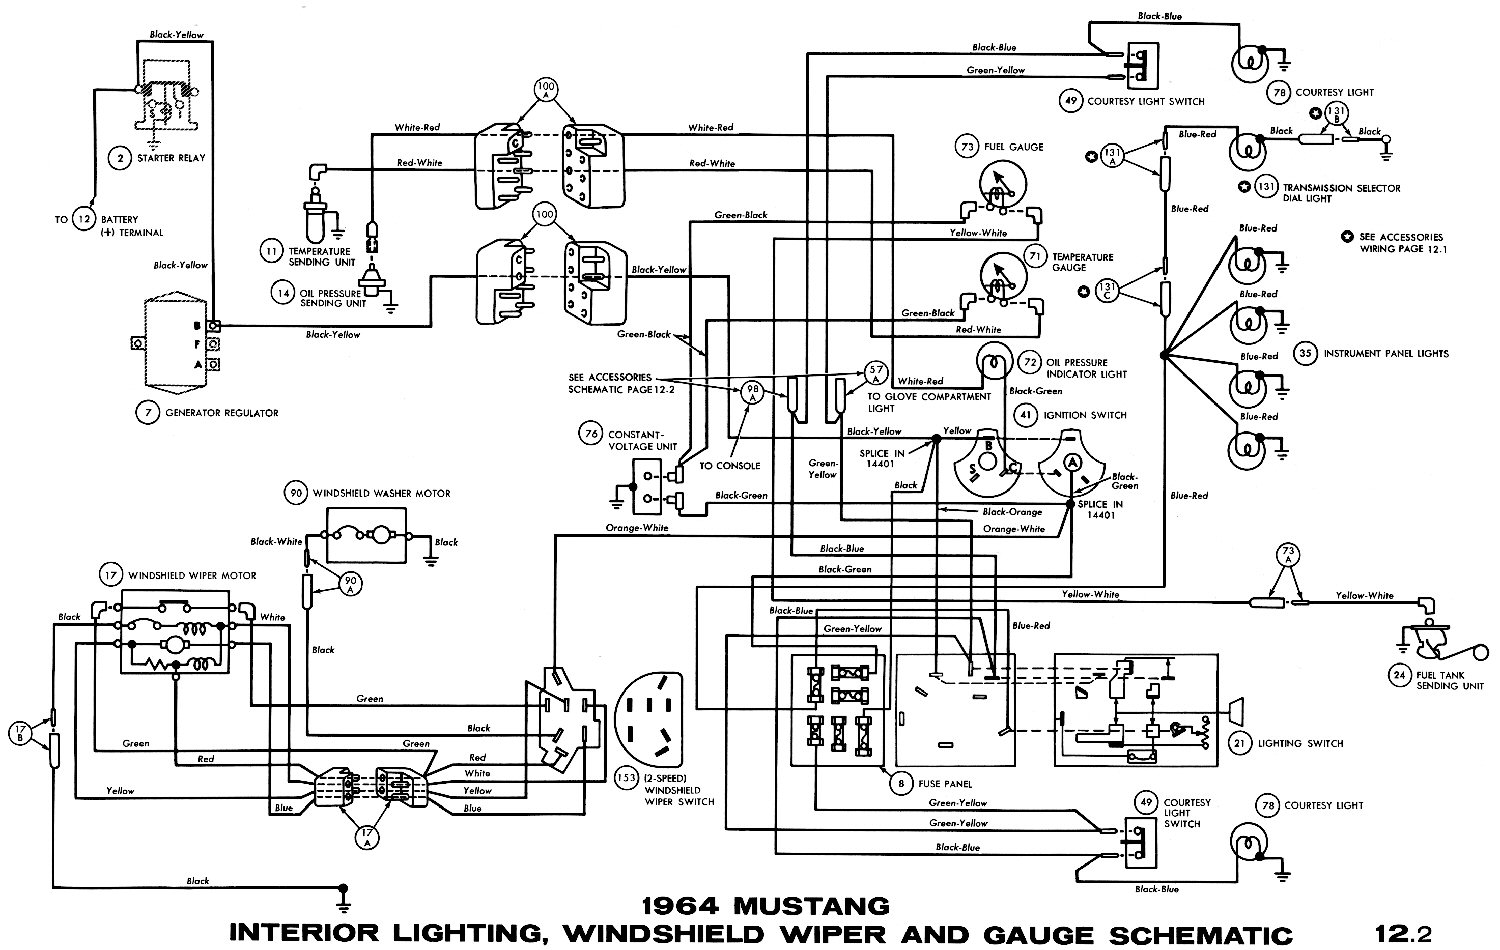 1984 Mustang Wiring Diagram Pdf Modern Design Of 1993 Ford Harness 84 Explained Rh 8 11 Corruptionincoal Org 86 Dash